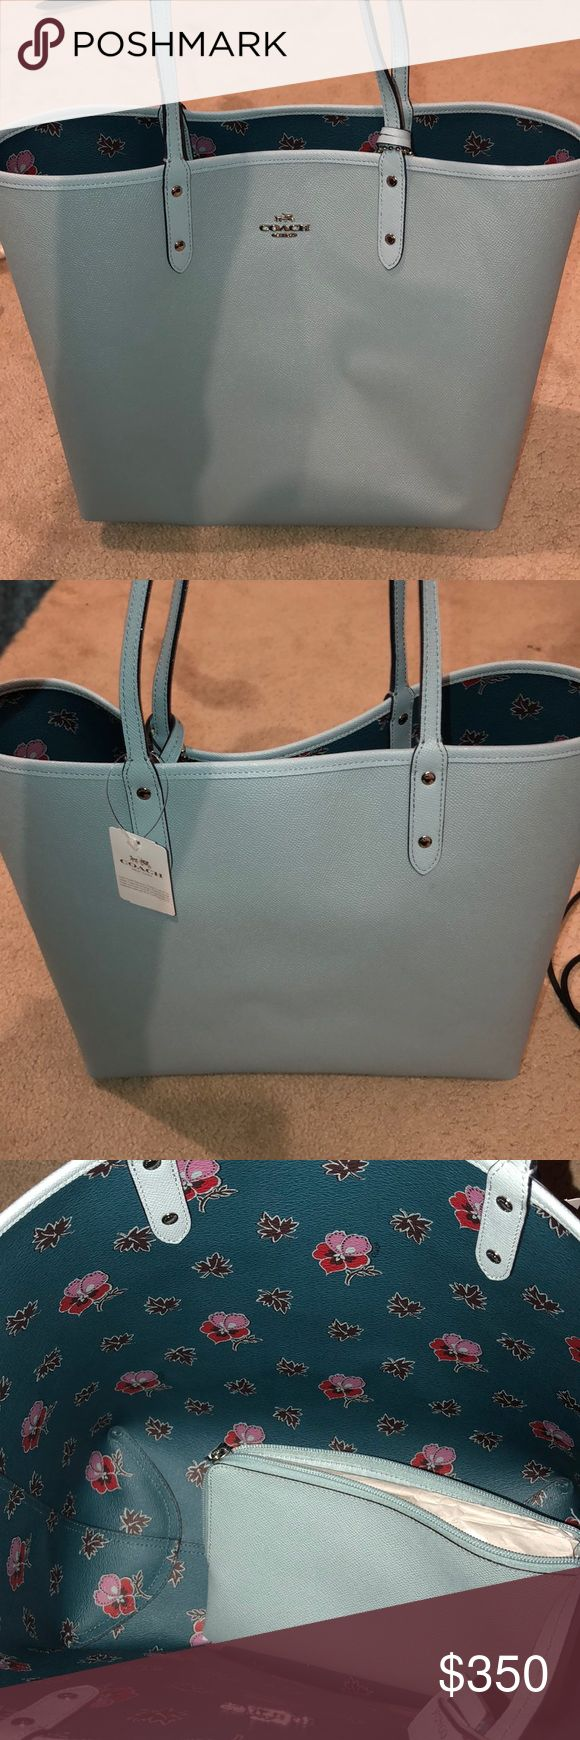 Coach Tote Brand new Coach tote, never used with tags. Original box and bag not included, but will box and bag prior to selling. The bag is baby blue leather with paisley leather inside and small clutch attached. Coach Bags Totes